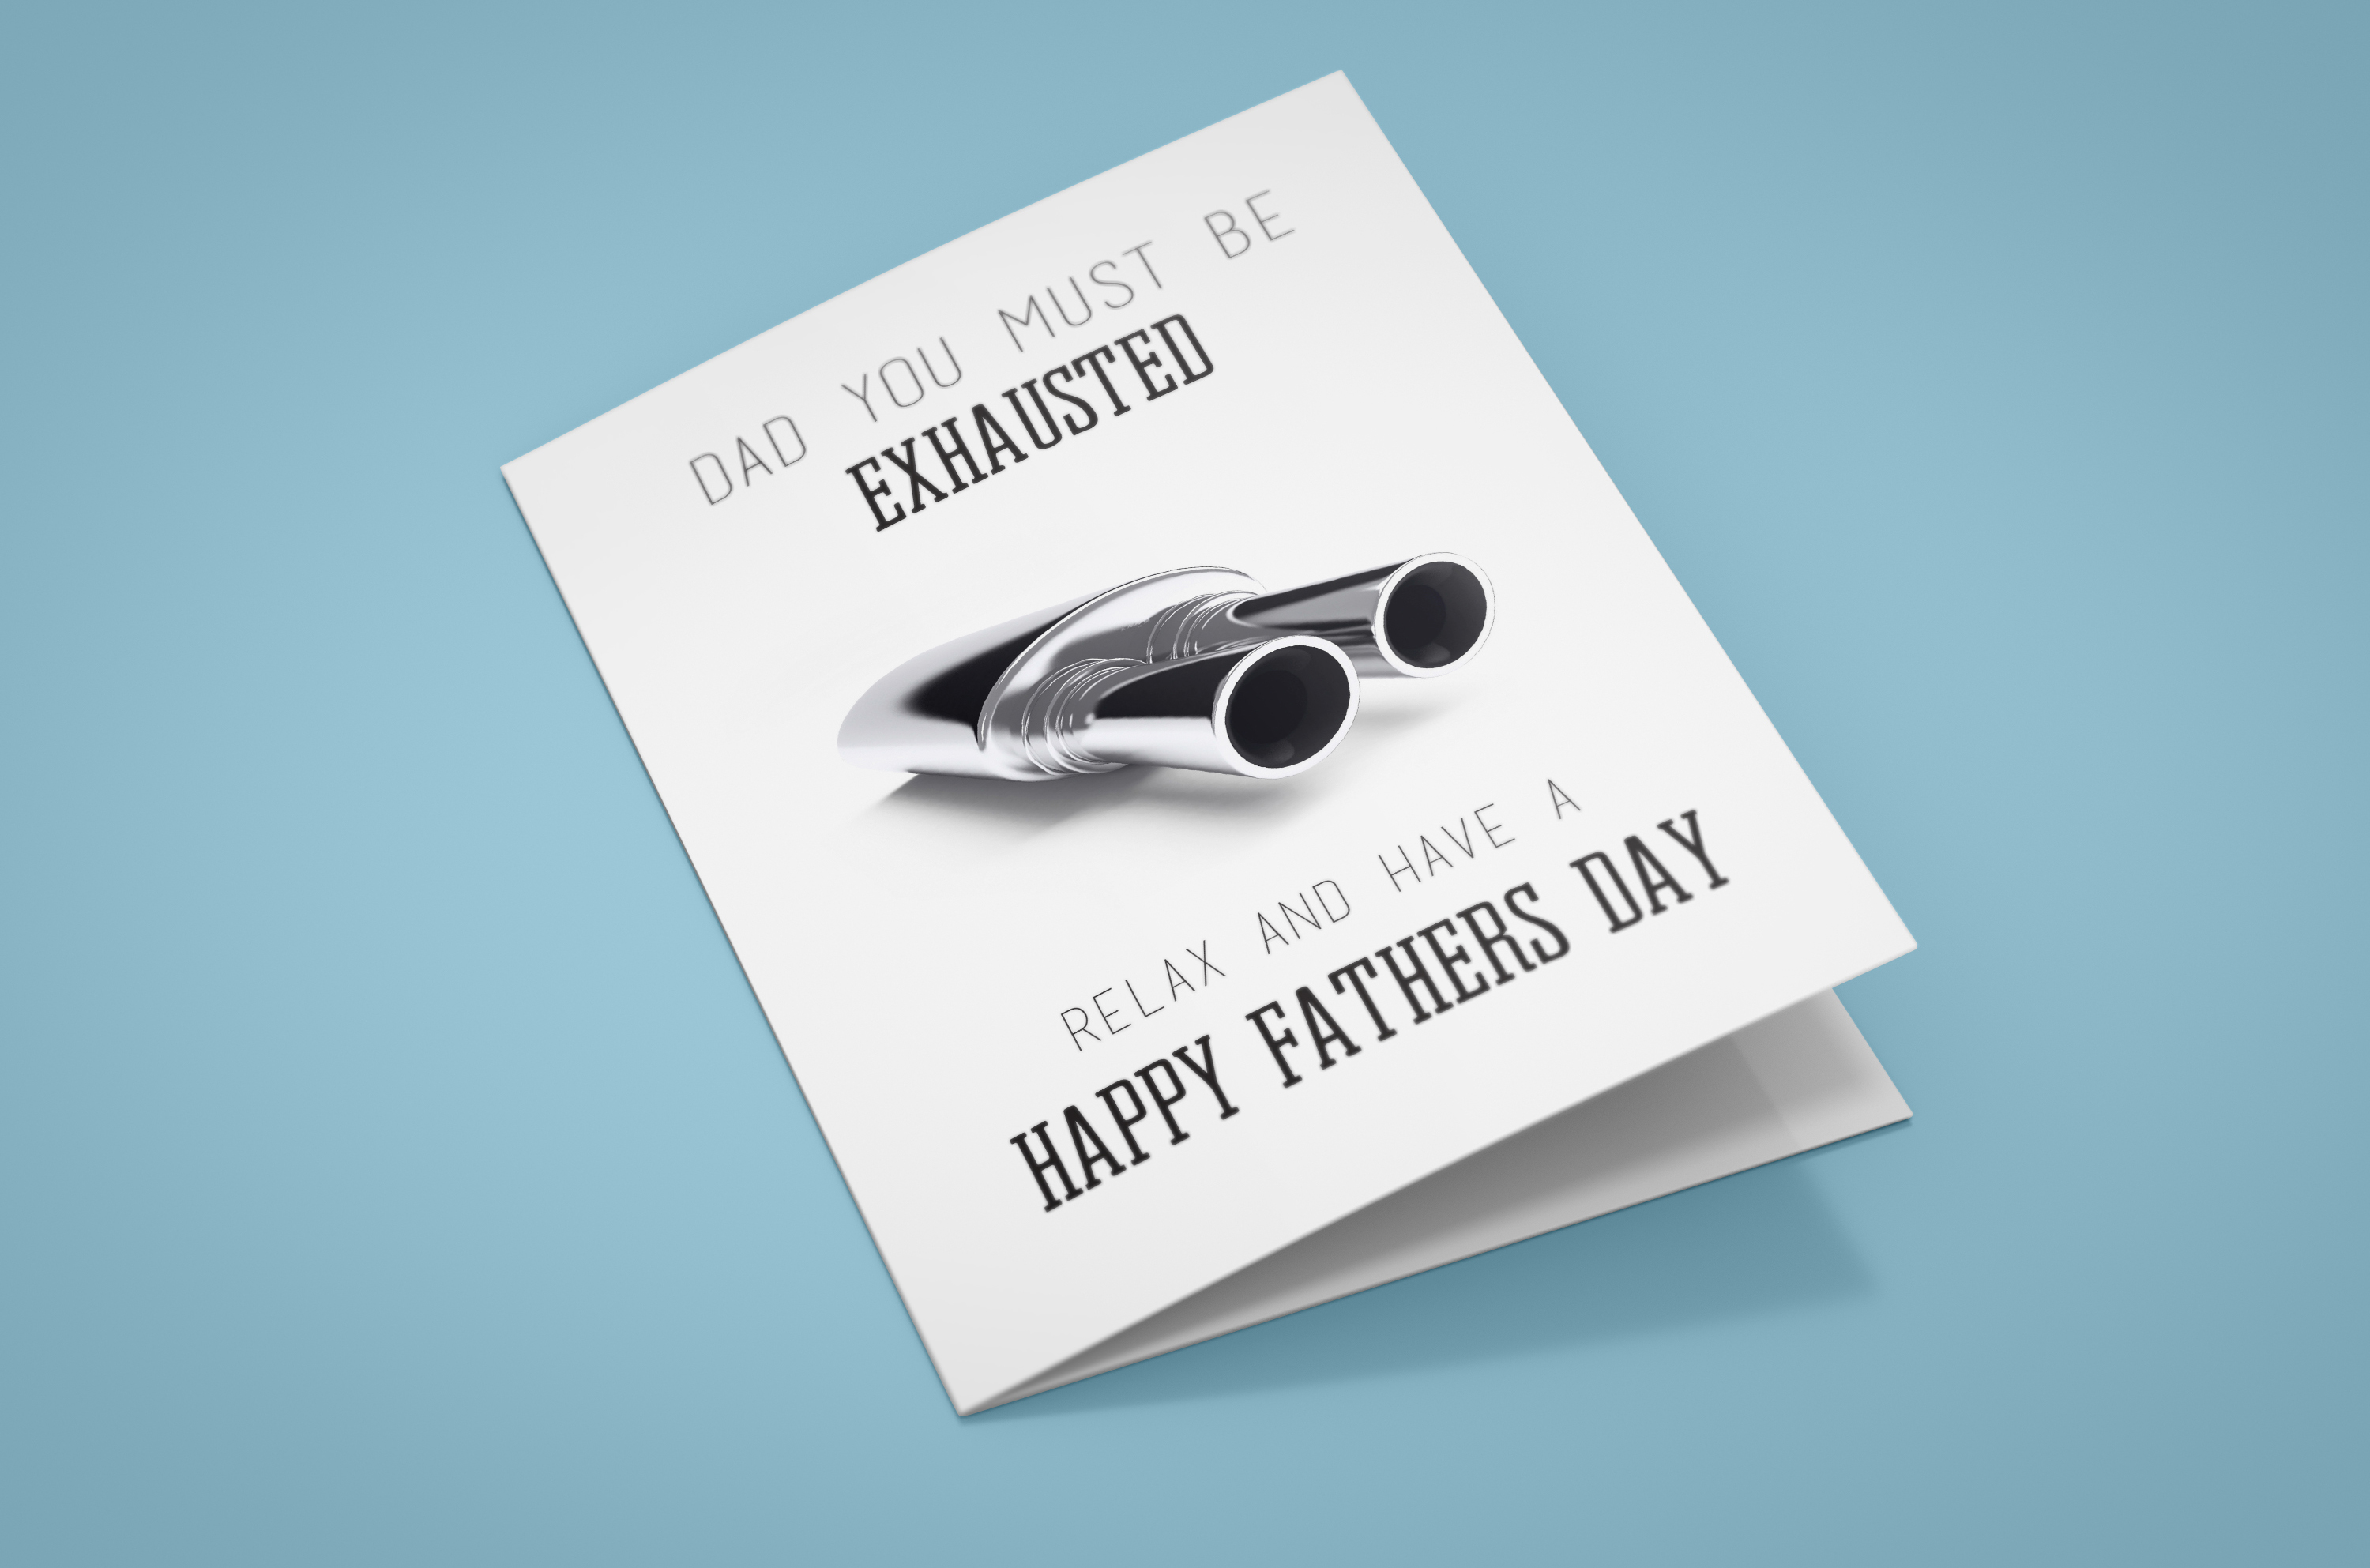 Free Father's Day cards | Car Related